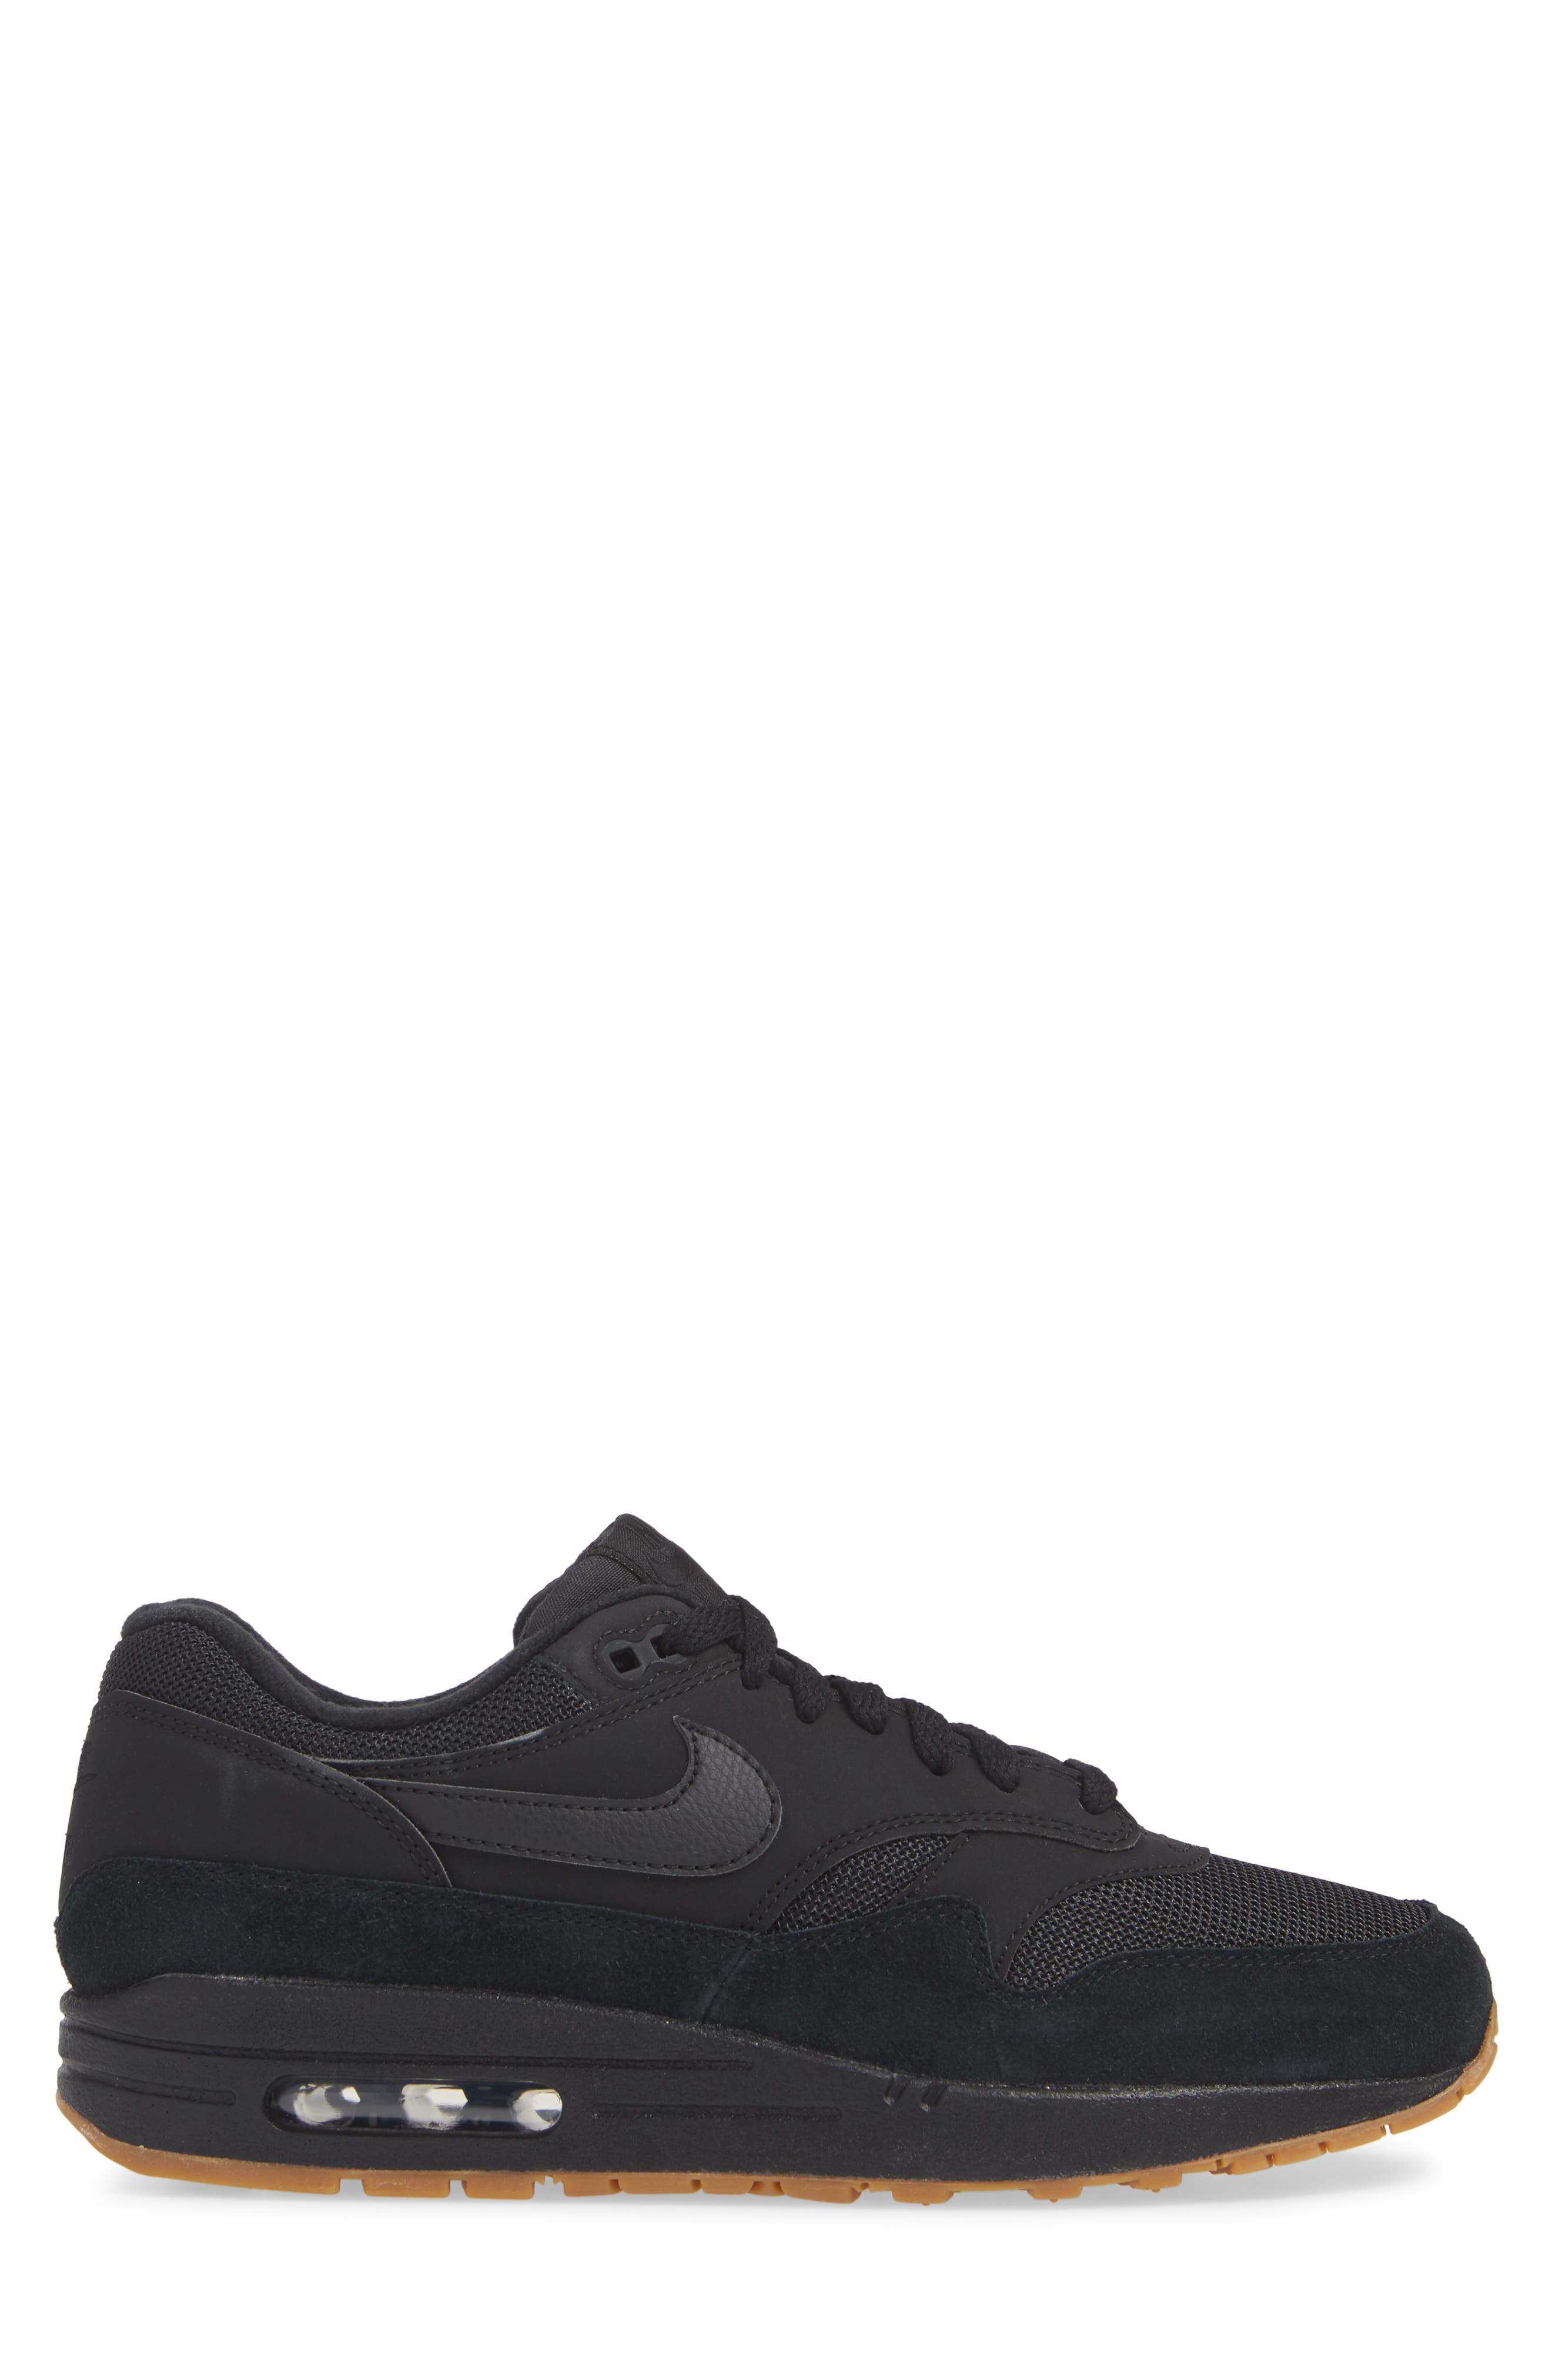 Air Max 1 Sneaker,                             Alternate thumbnail 3, color,                             BLACK/ BLACK/ GUM MEDIUM BROWN